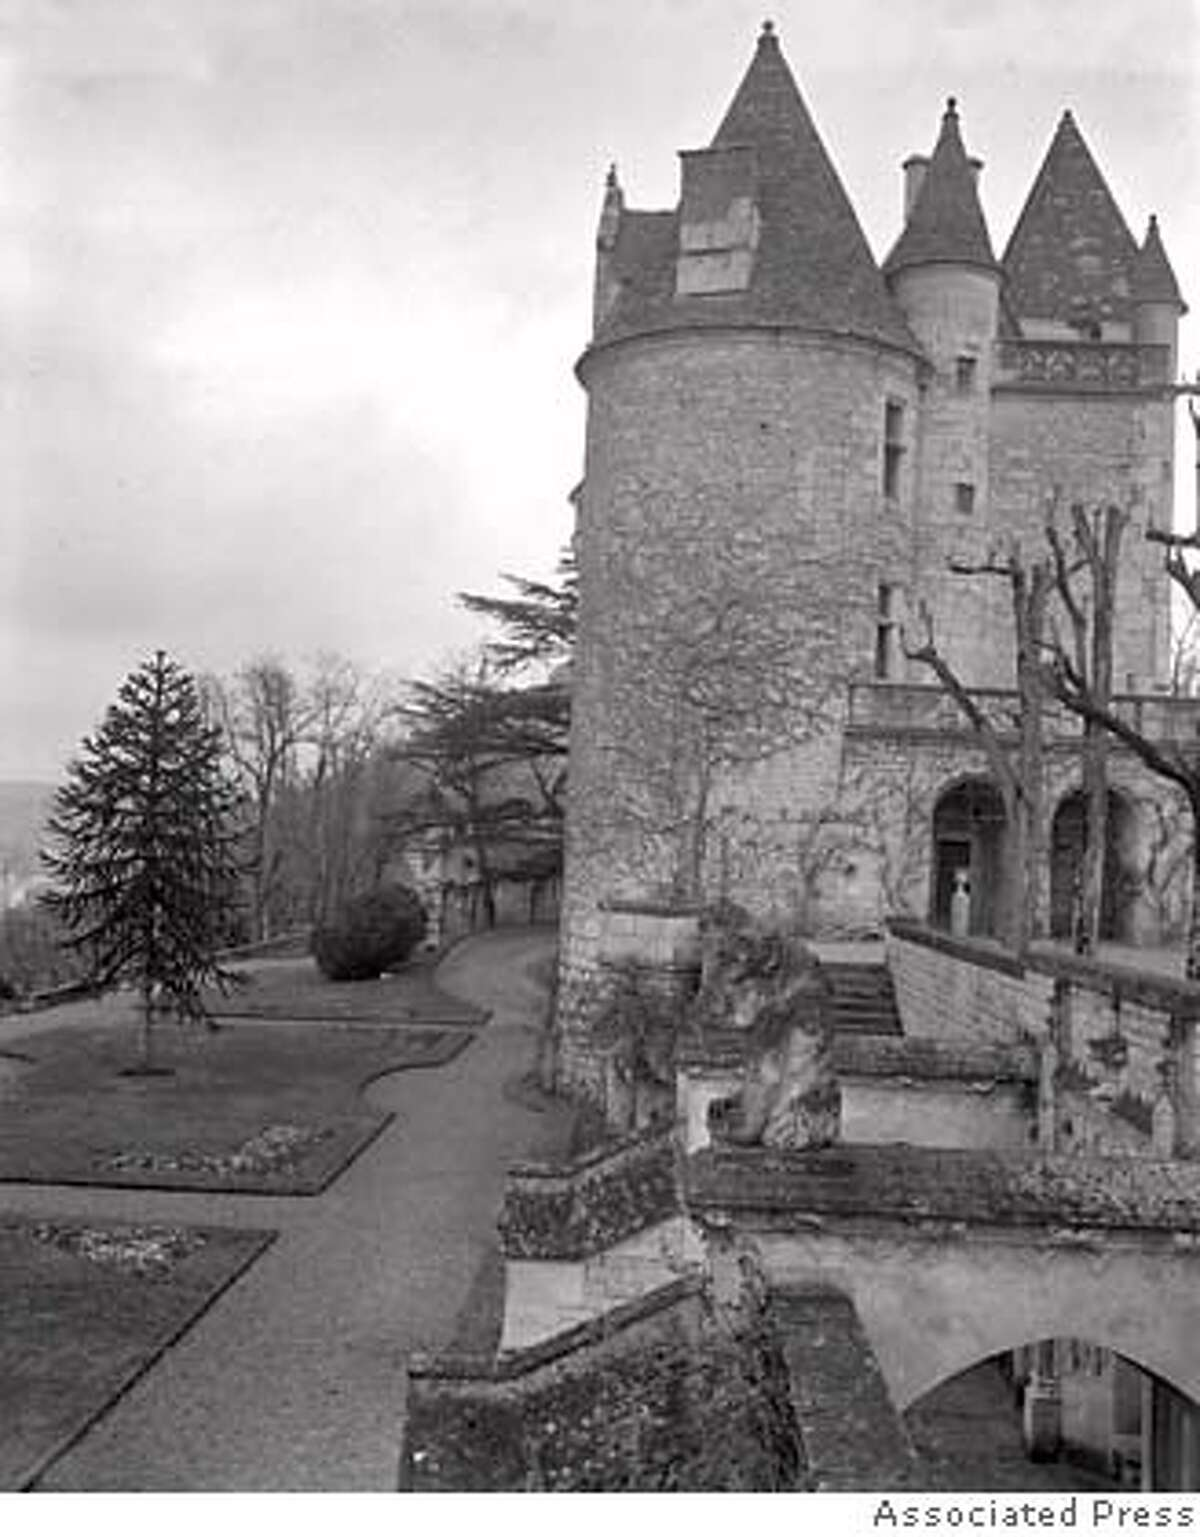 TRAVEL FRANCE - The home of Josephine Baker, Chateau des Milandes in southern France, is seen in 1956. (AP Photo)